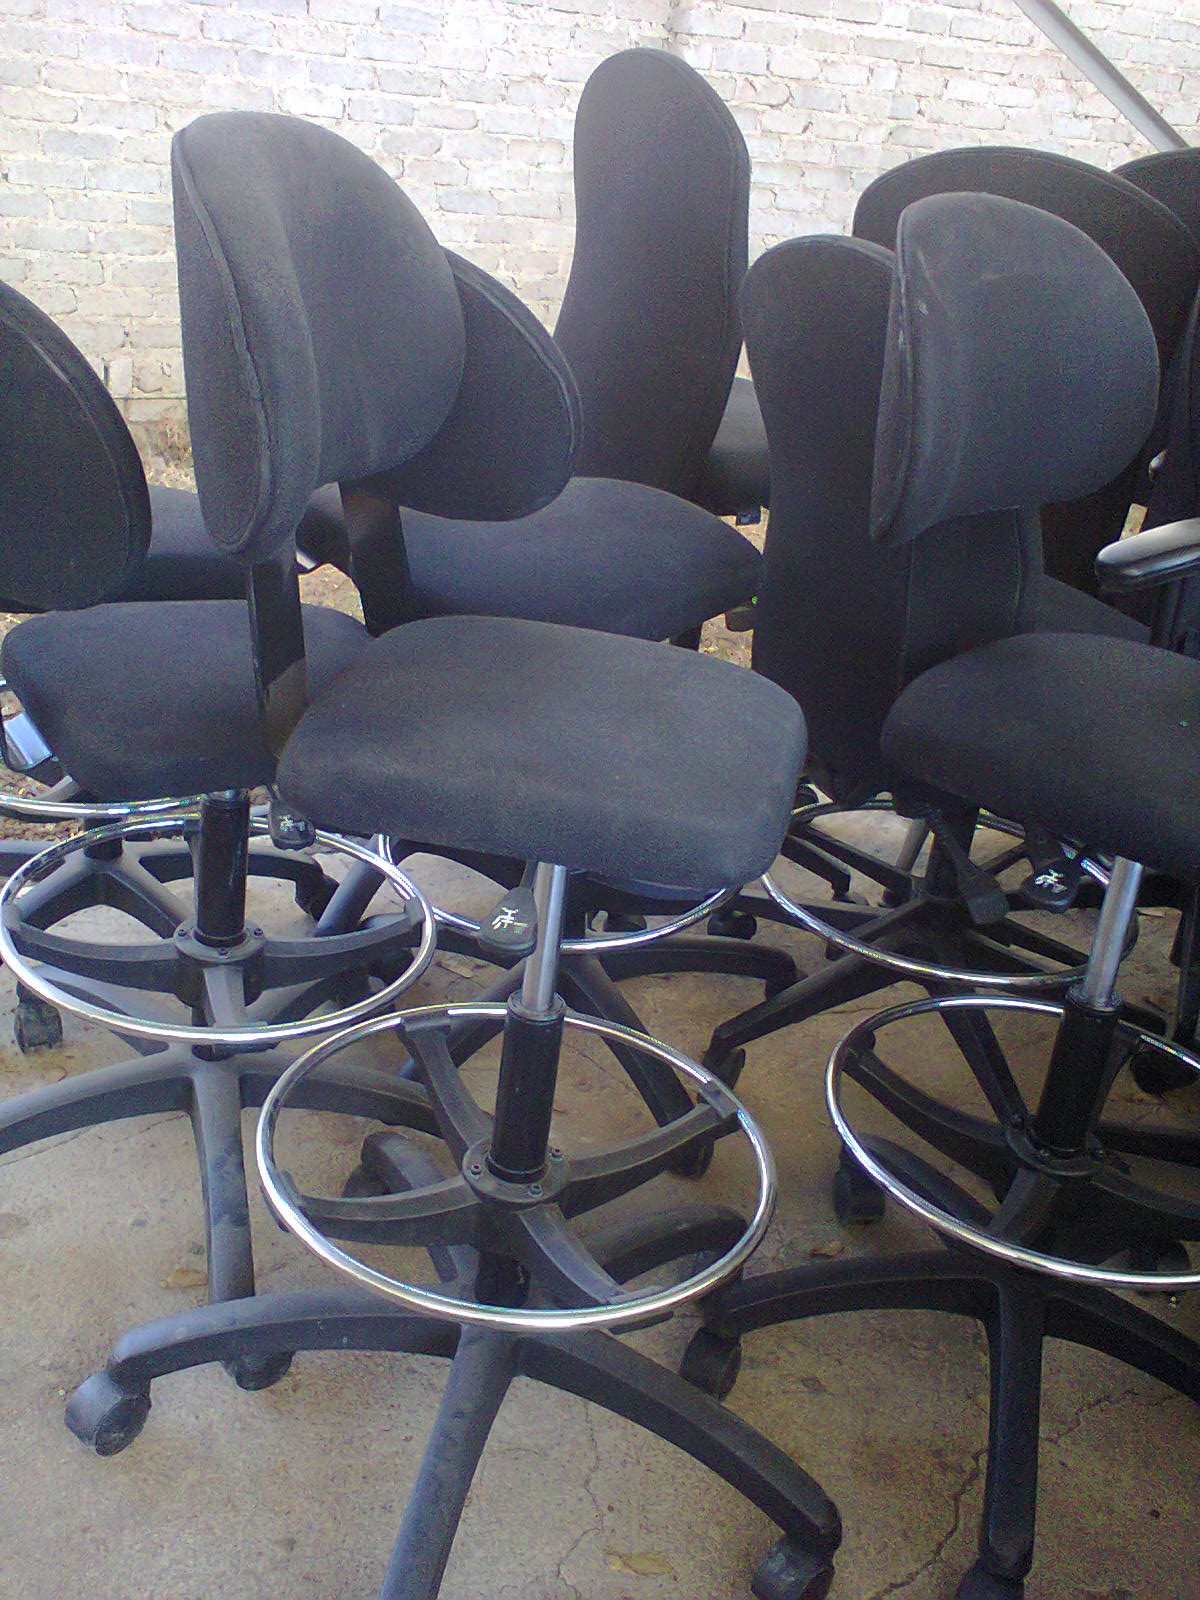 Chairs - Draughtsman stools + chairs